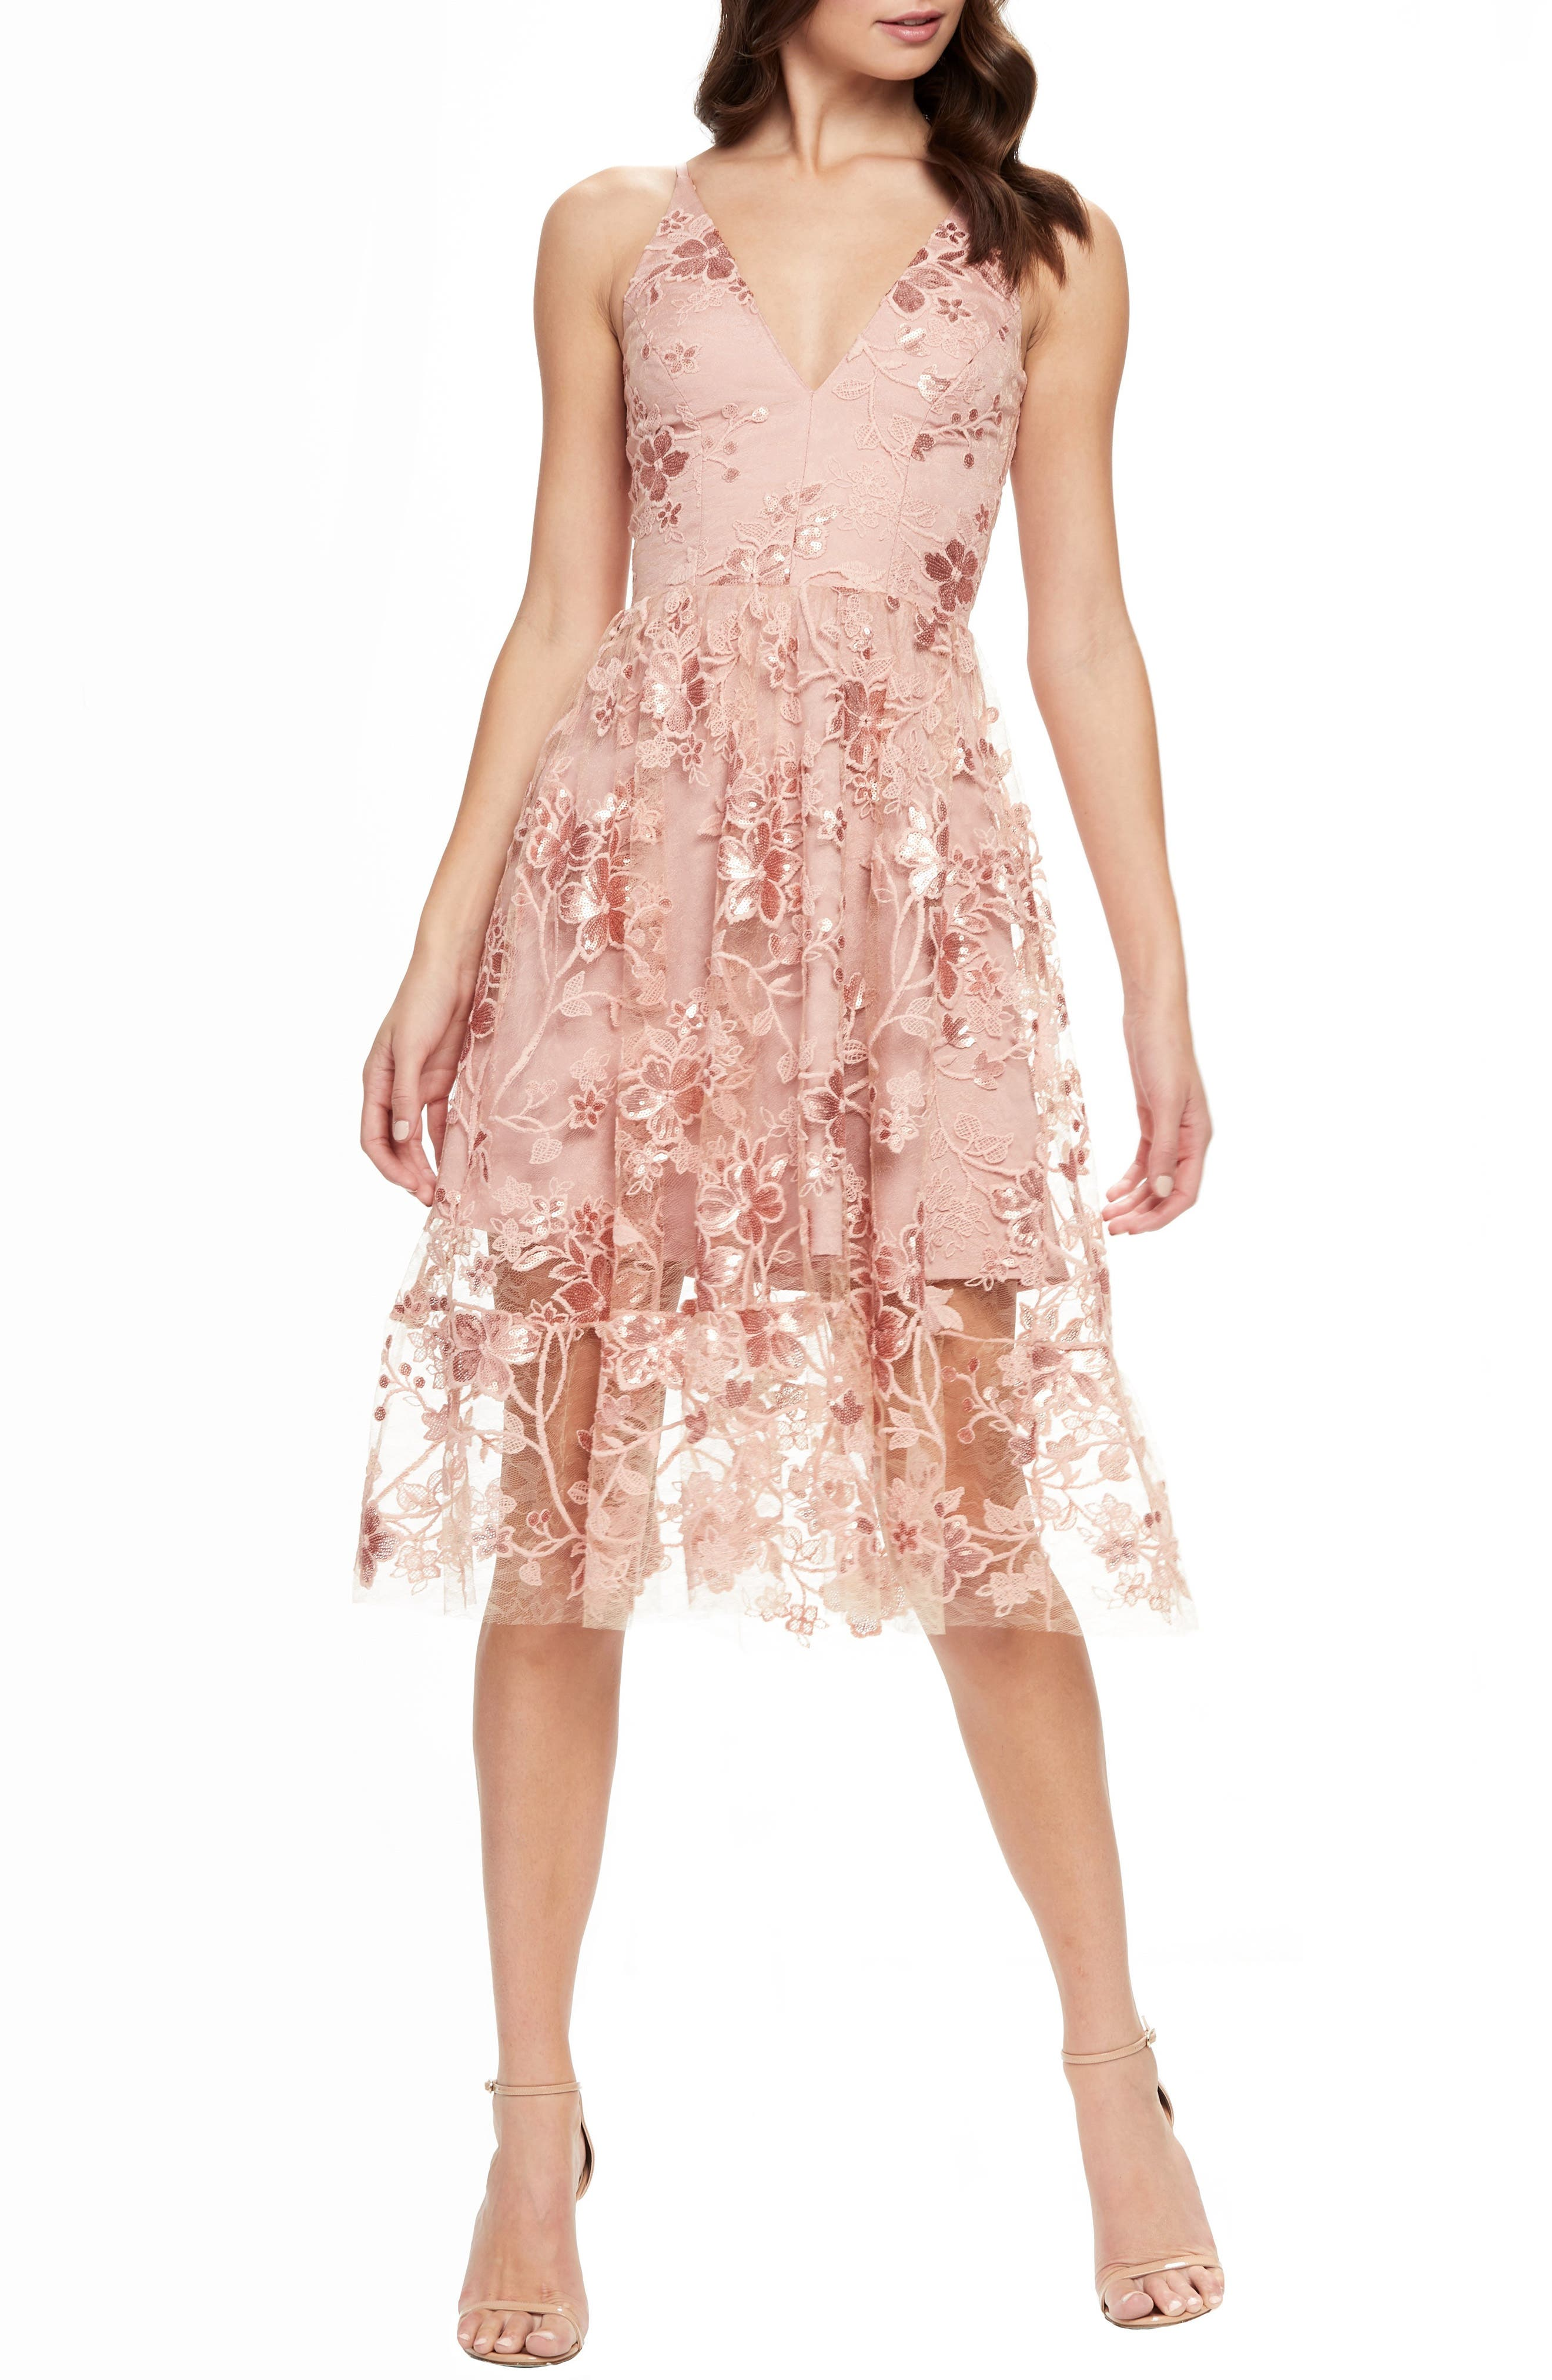 DRESS THE POPULATION, Ally 3D Floral Mesh Cocktail Dress, Main thumbnail 1, color, DUSTY PINK